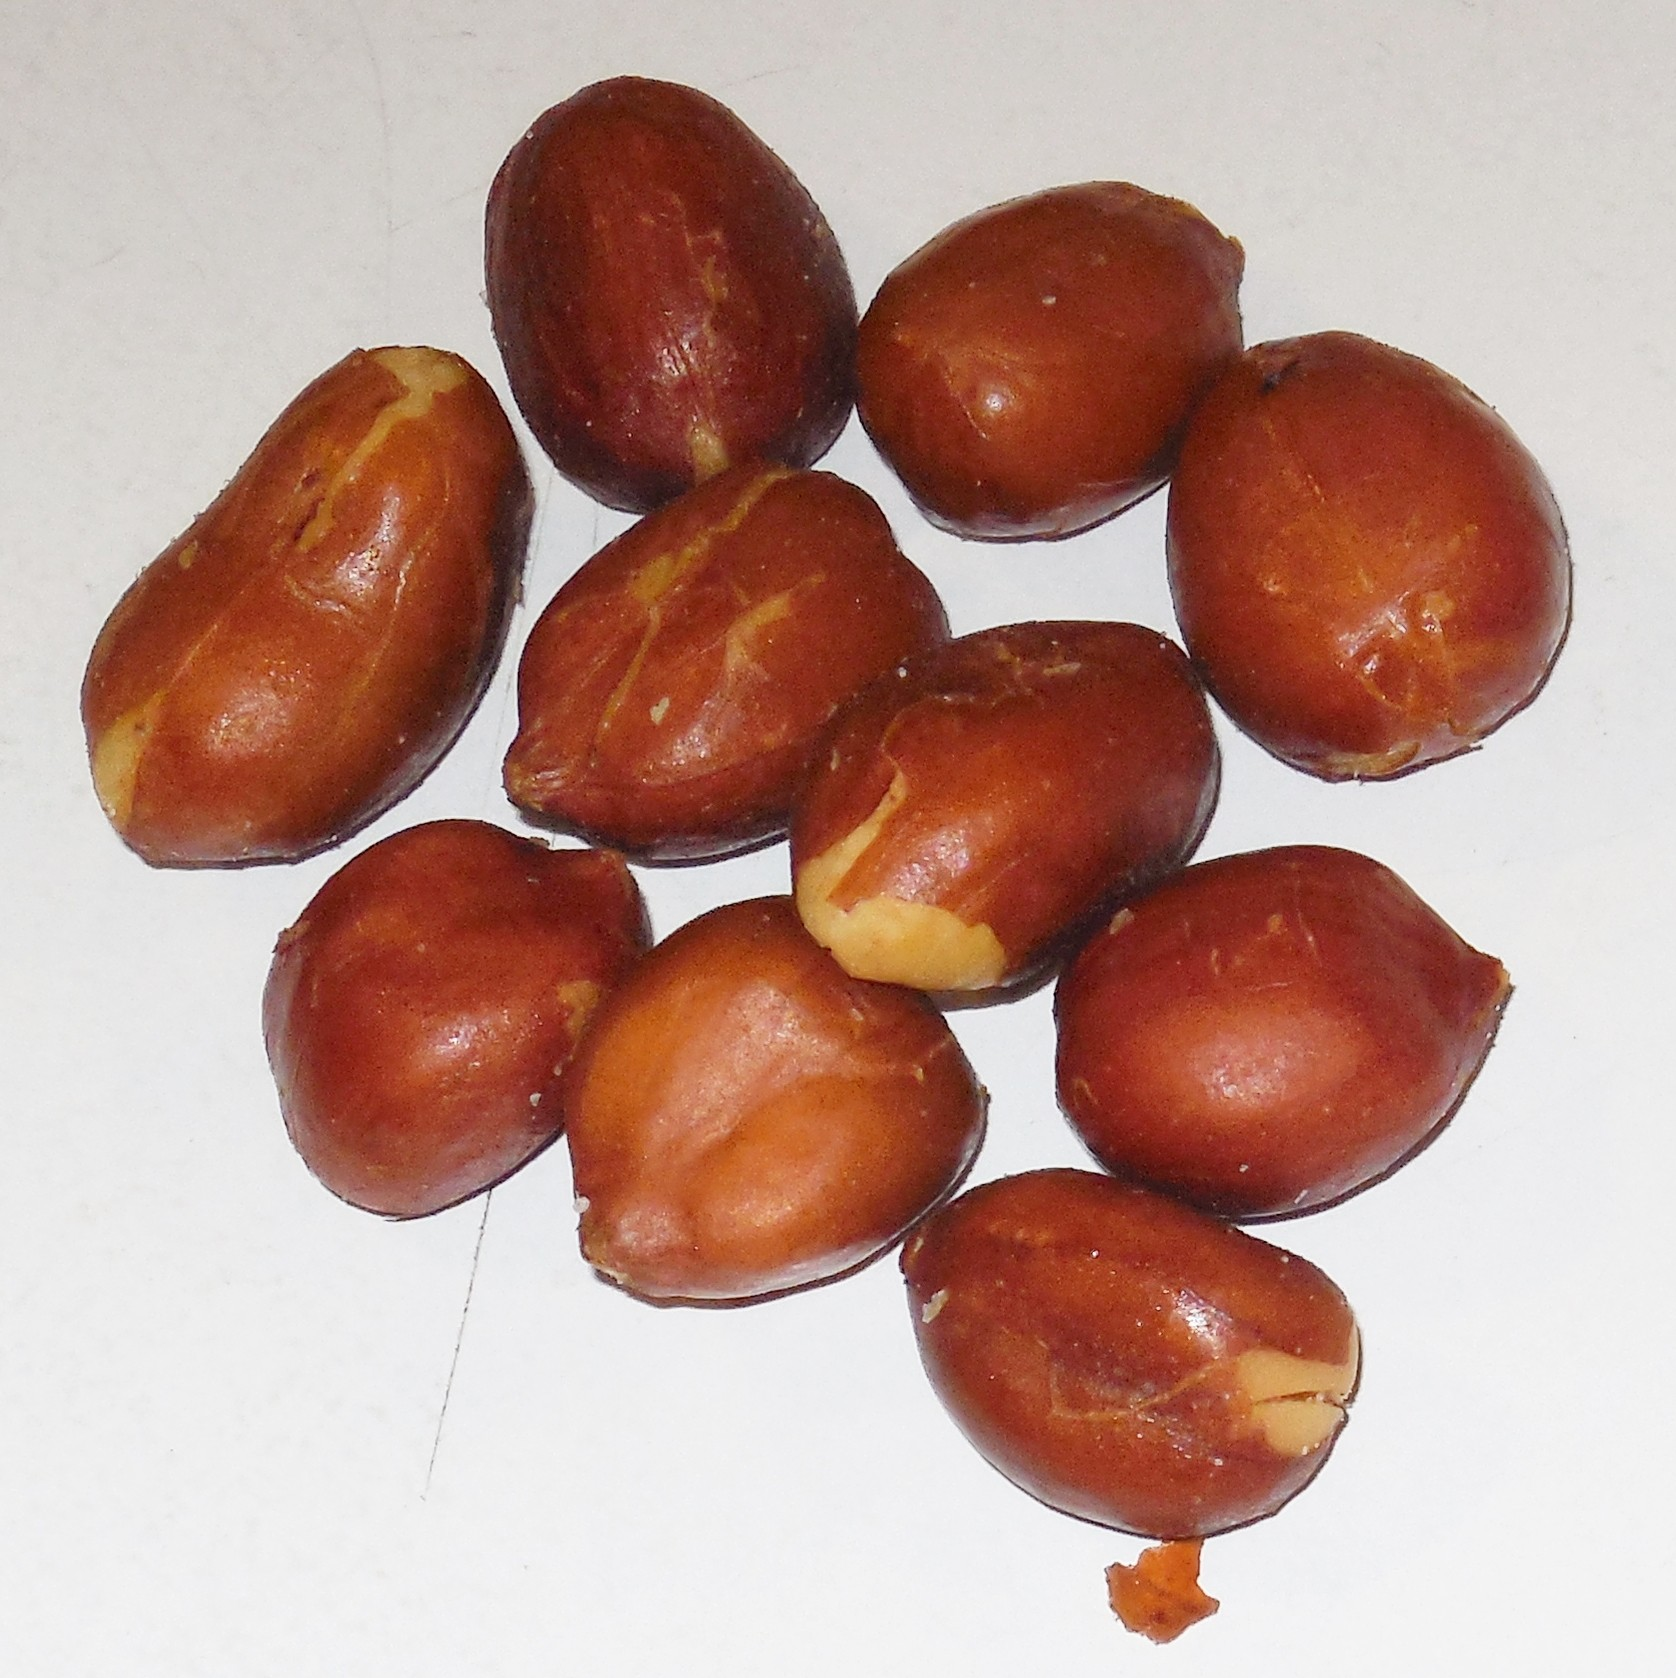 Redskin Peanuts -- Roasted with No Salt